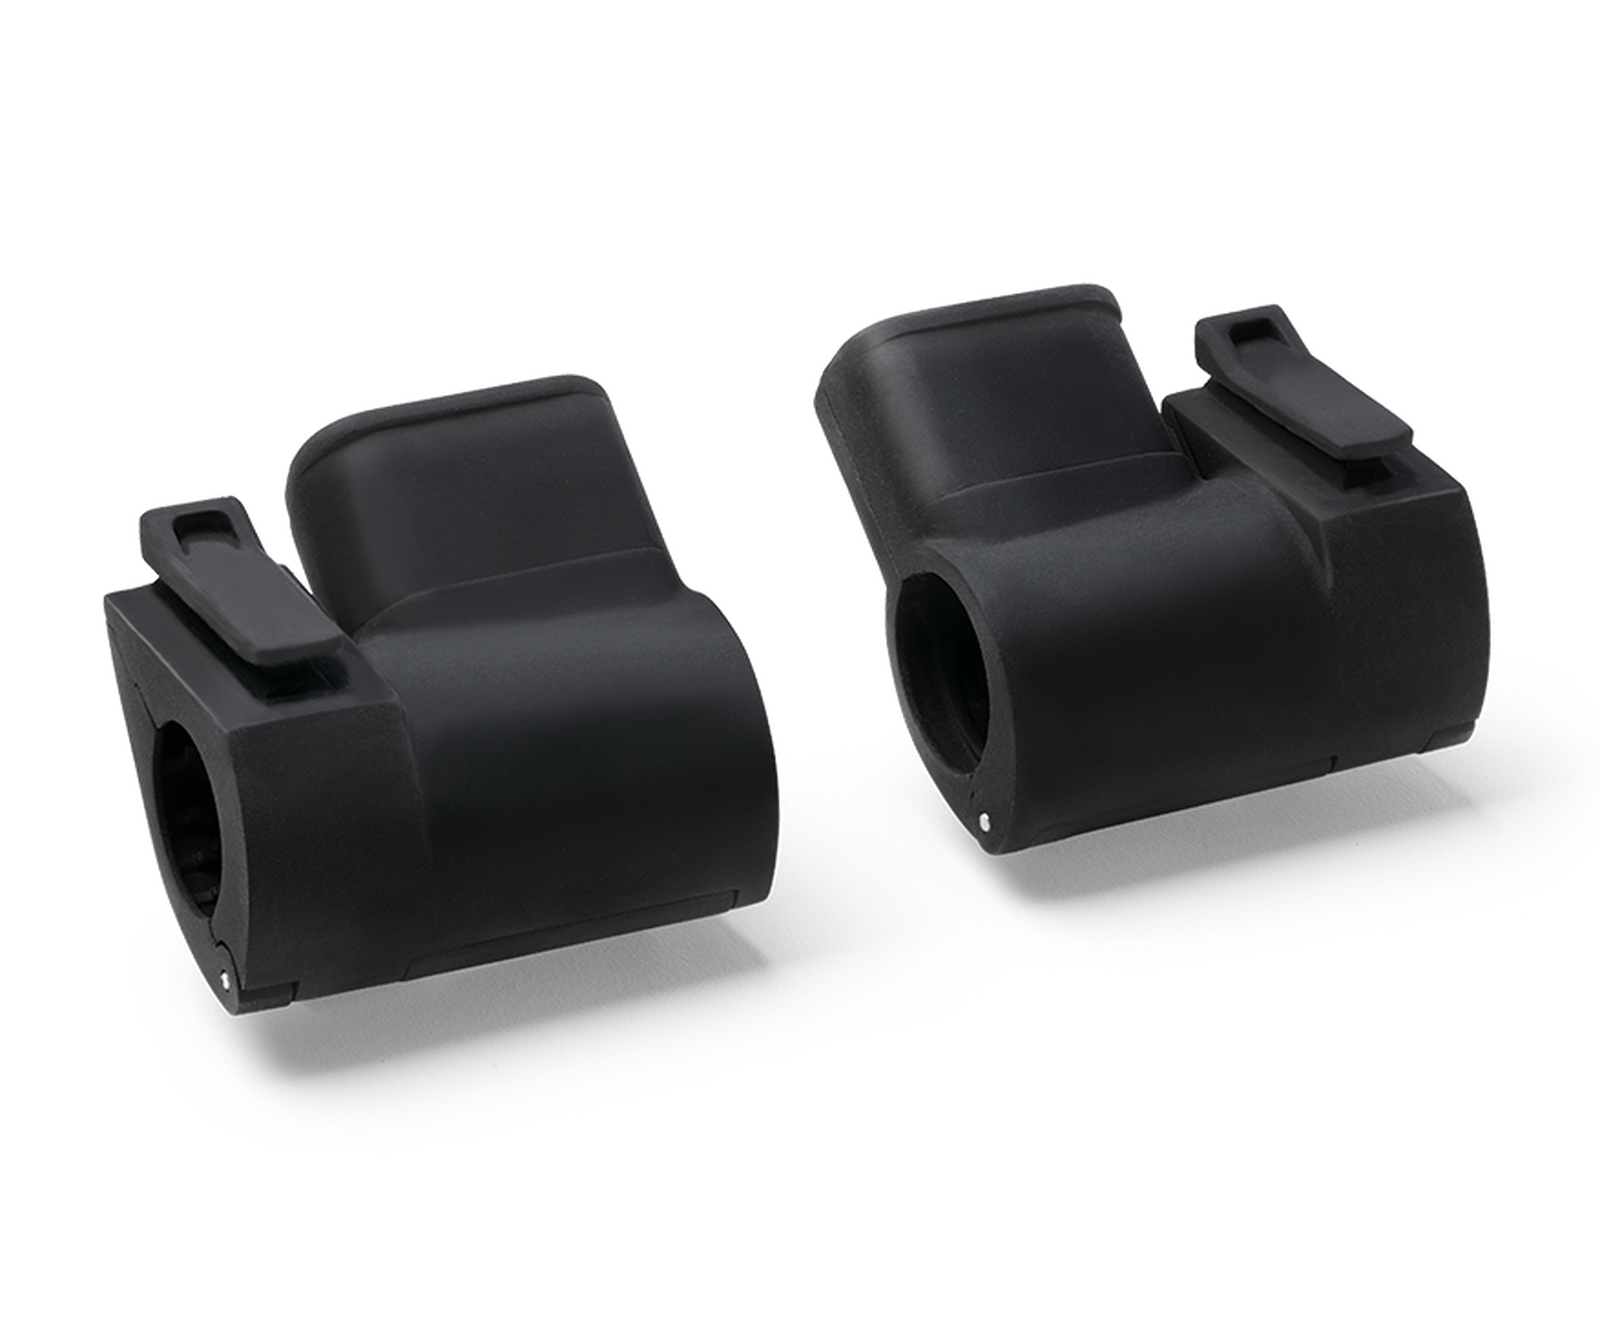 Bugaboo Bee comfort wheeled board adapter (2015 model)